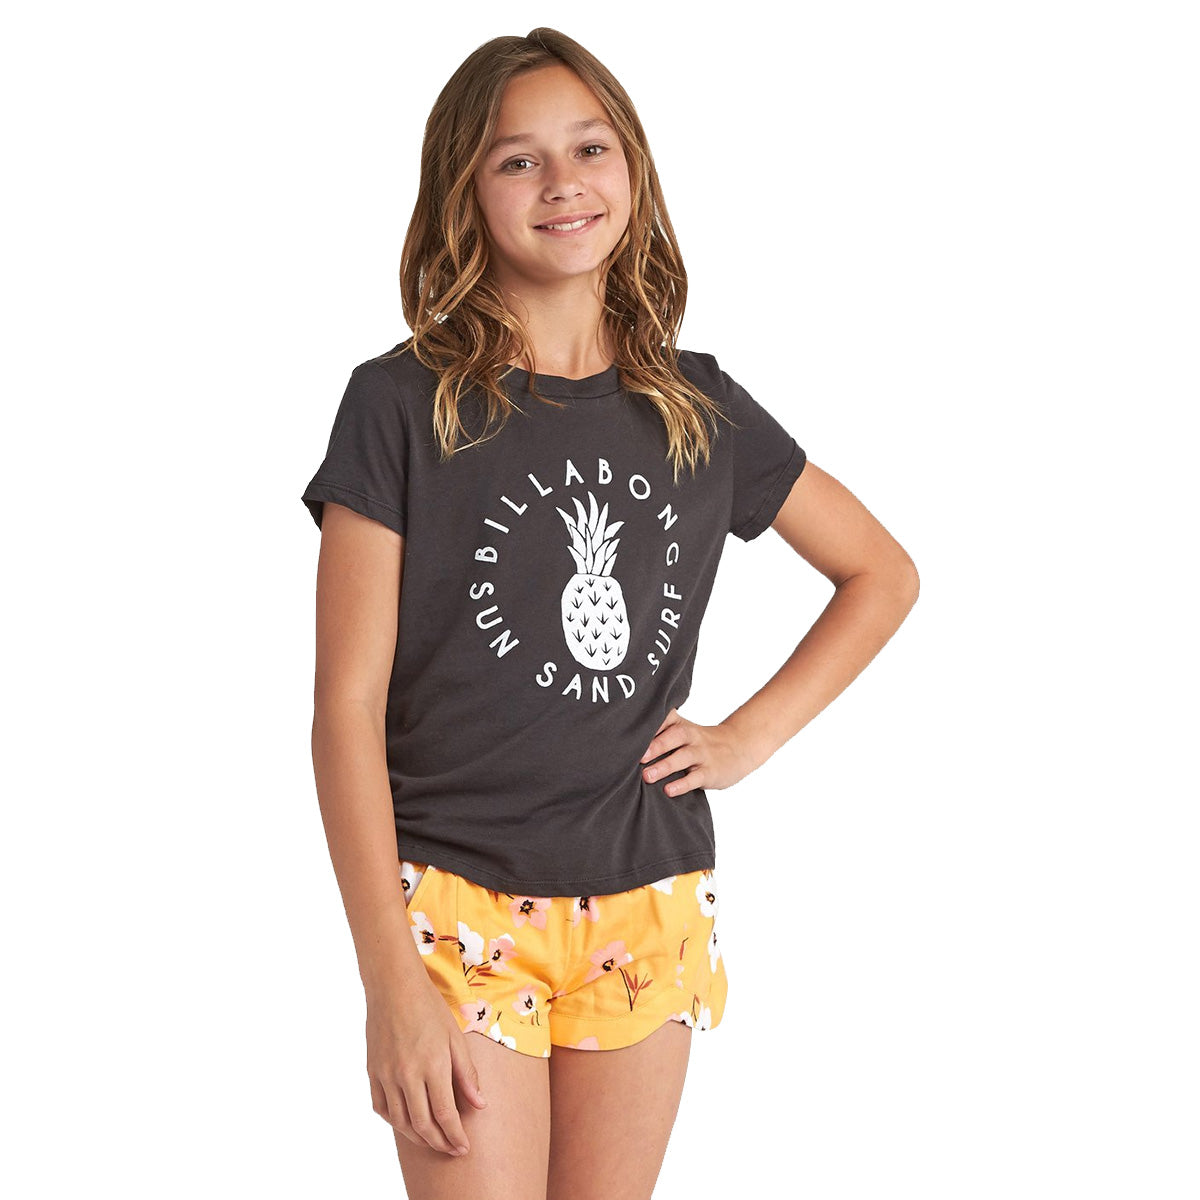 Billabong Sand And Surf Youth Girls Short-Sleeve Shirts (USED LIKE NEW / LAST CALL SALE)